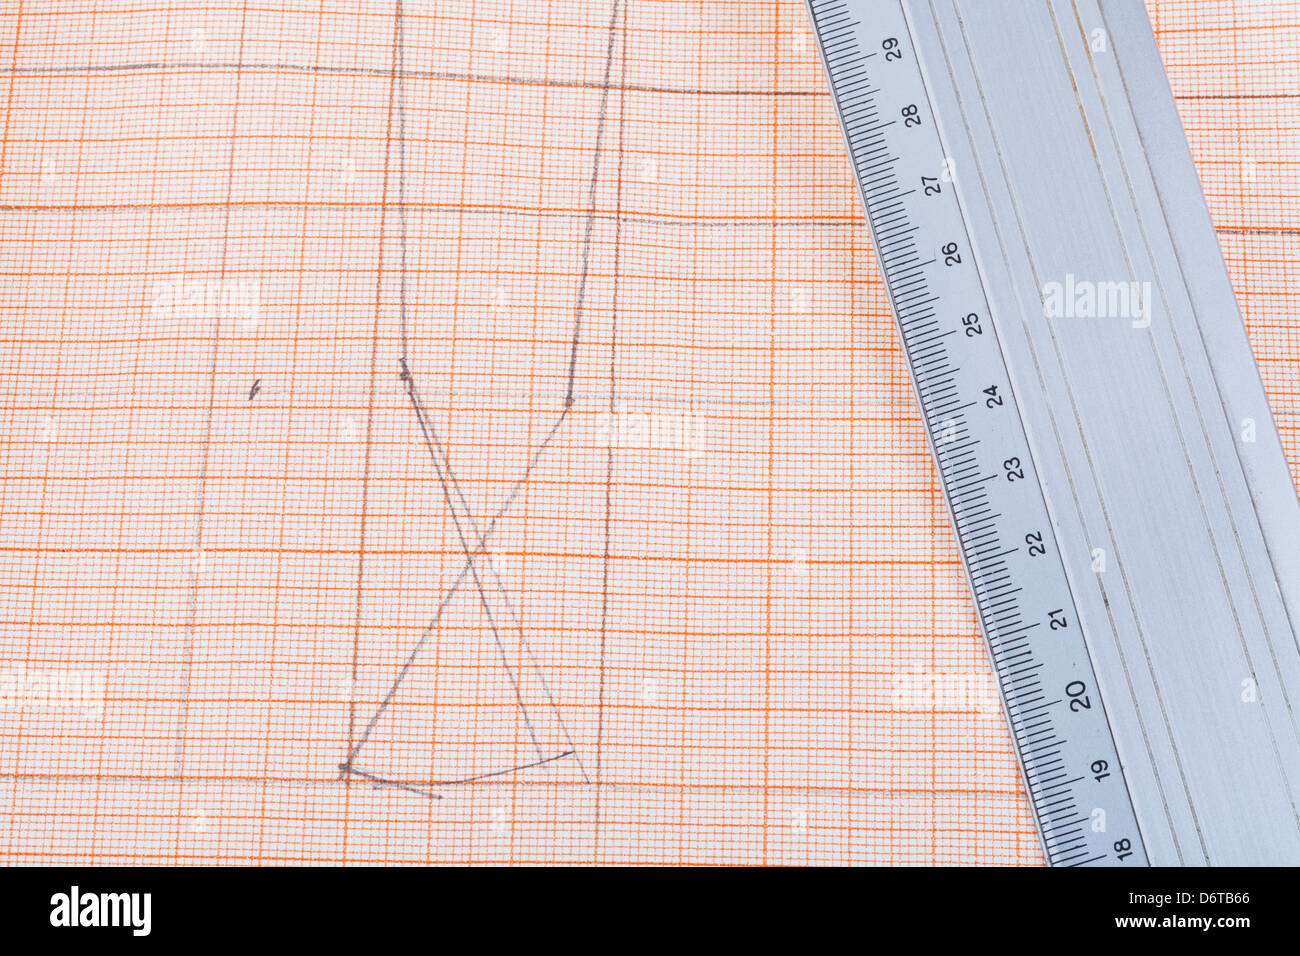 metal ruler at graph paper with dress pattern - Stock Image